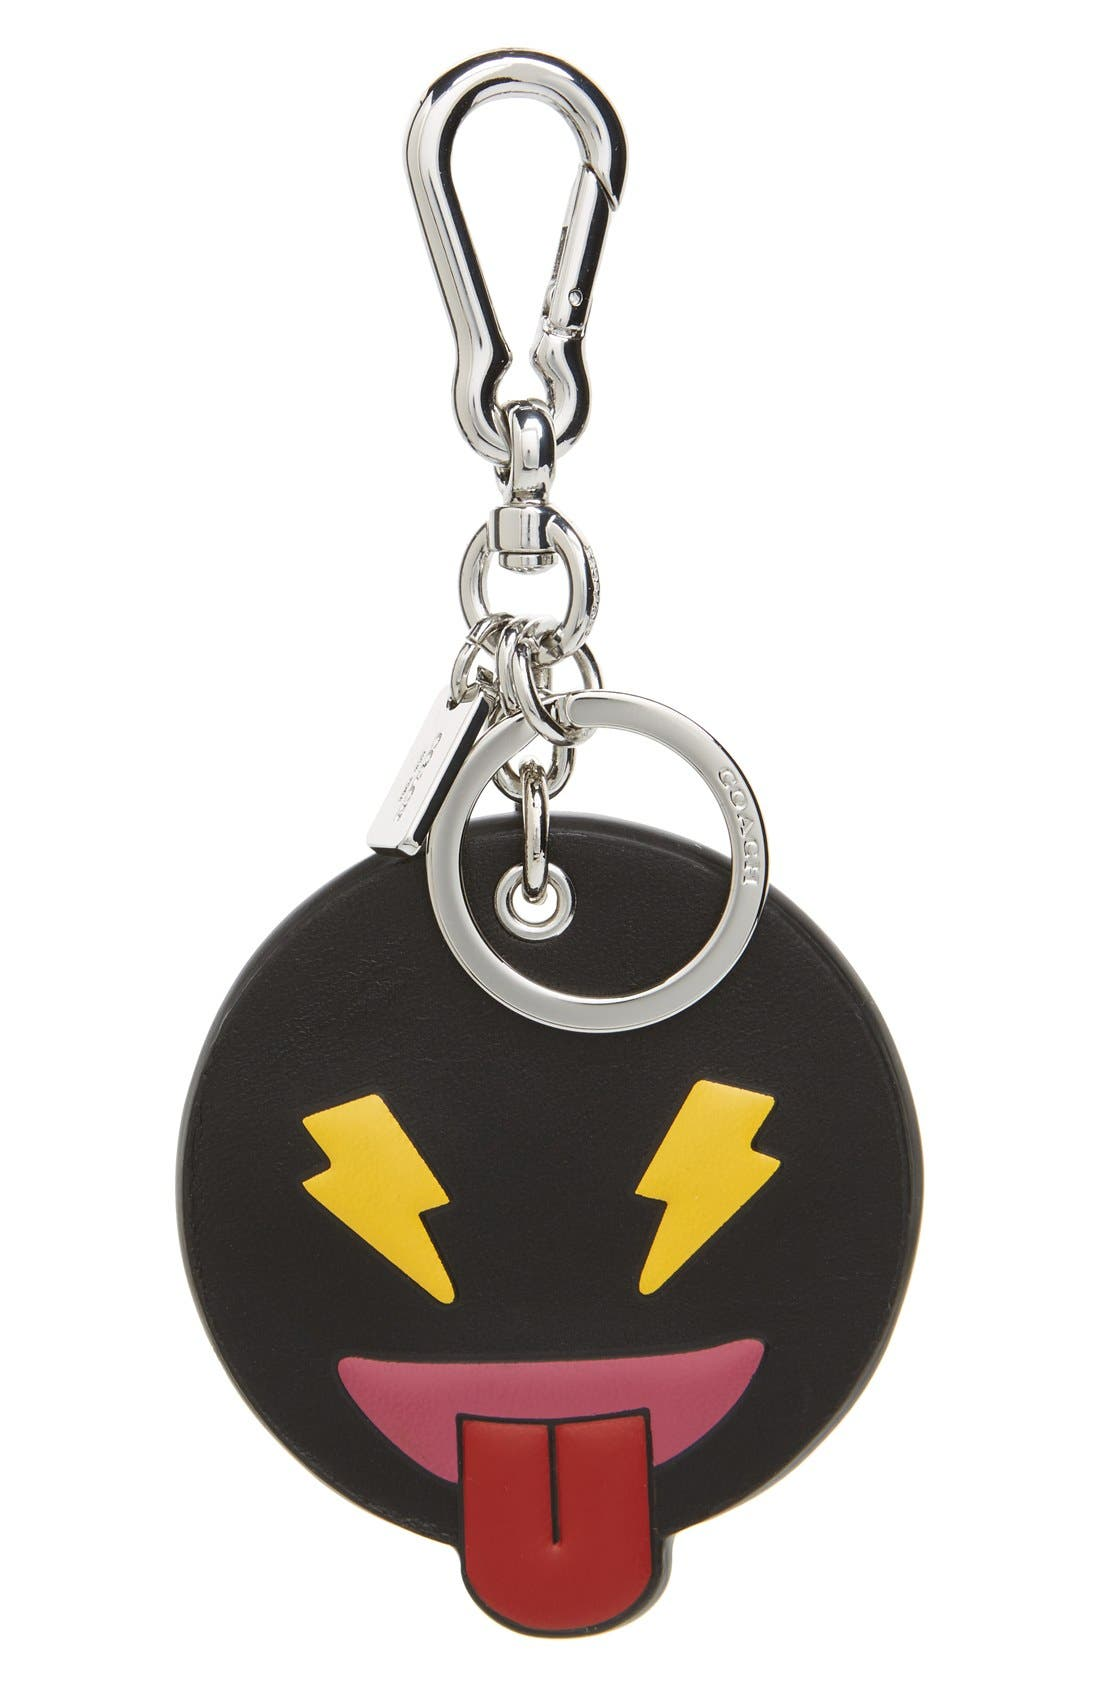 Alternate Image 1 Selected - COACH 'Cheeky Emoji' Bag Charm